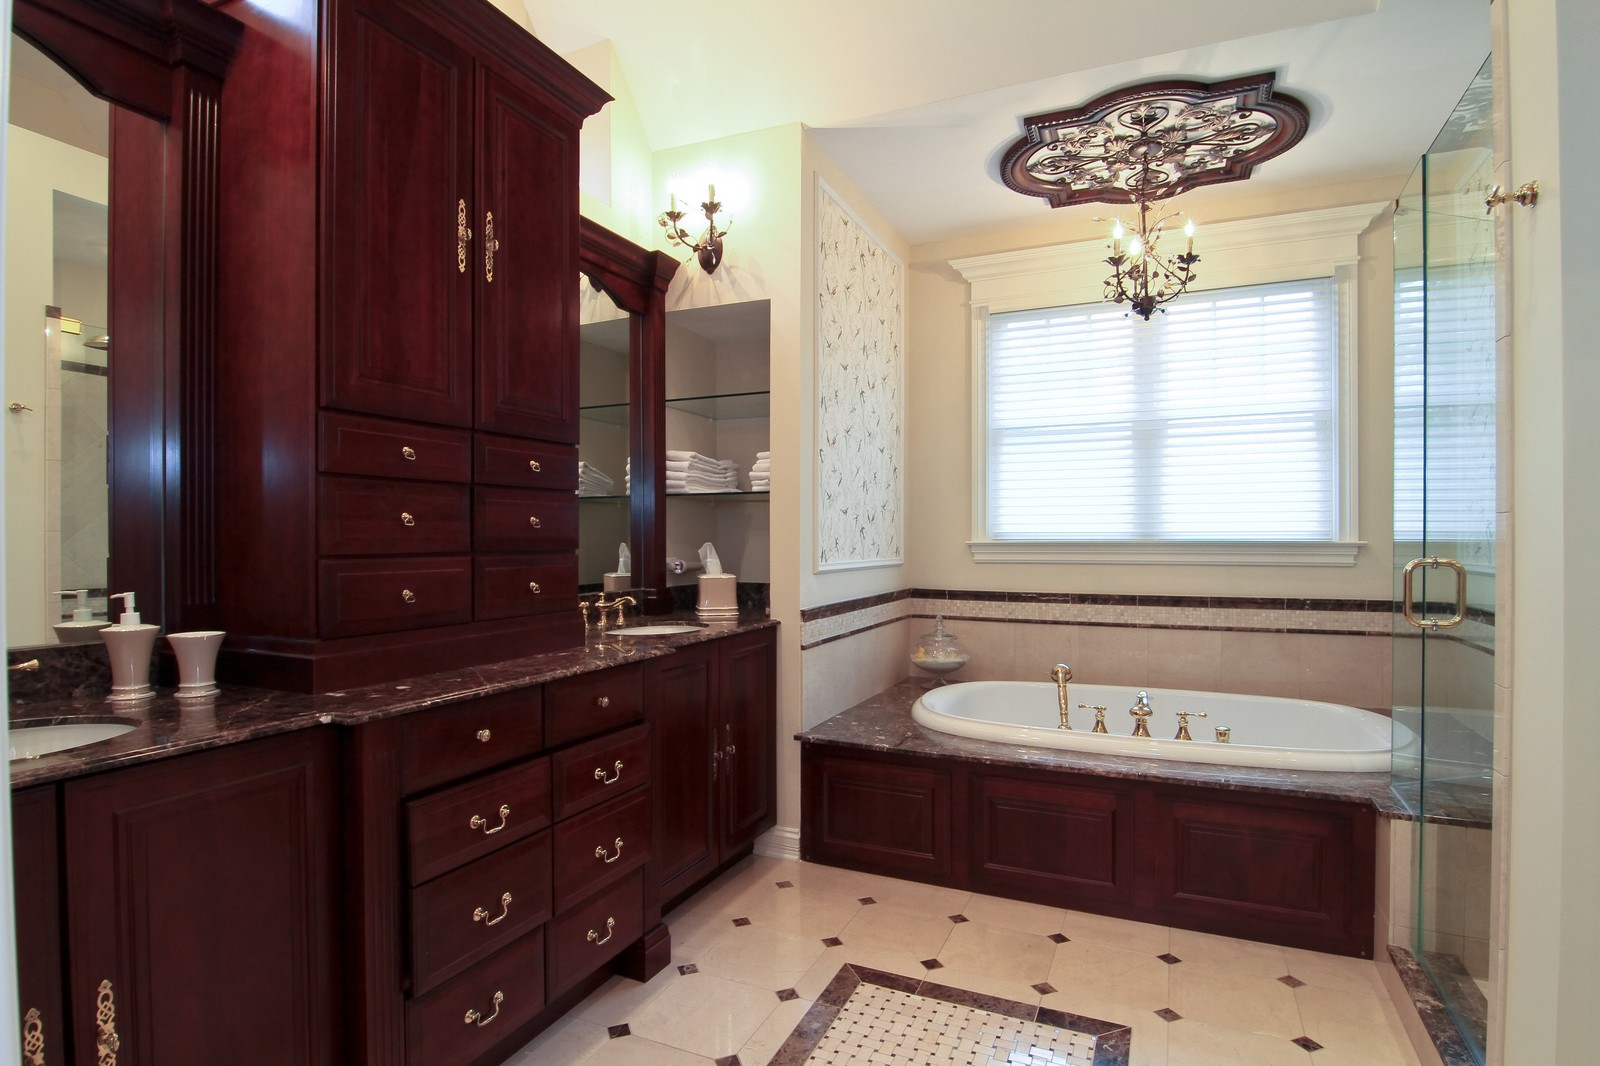 Real Estate Photography - 127 Tuttle, Claredon Hills, IL, 60514 - Master Bathroom